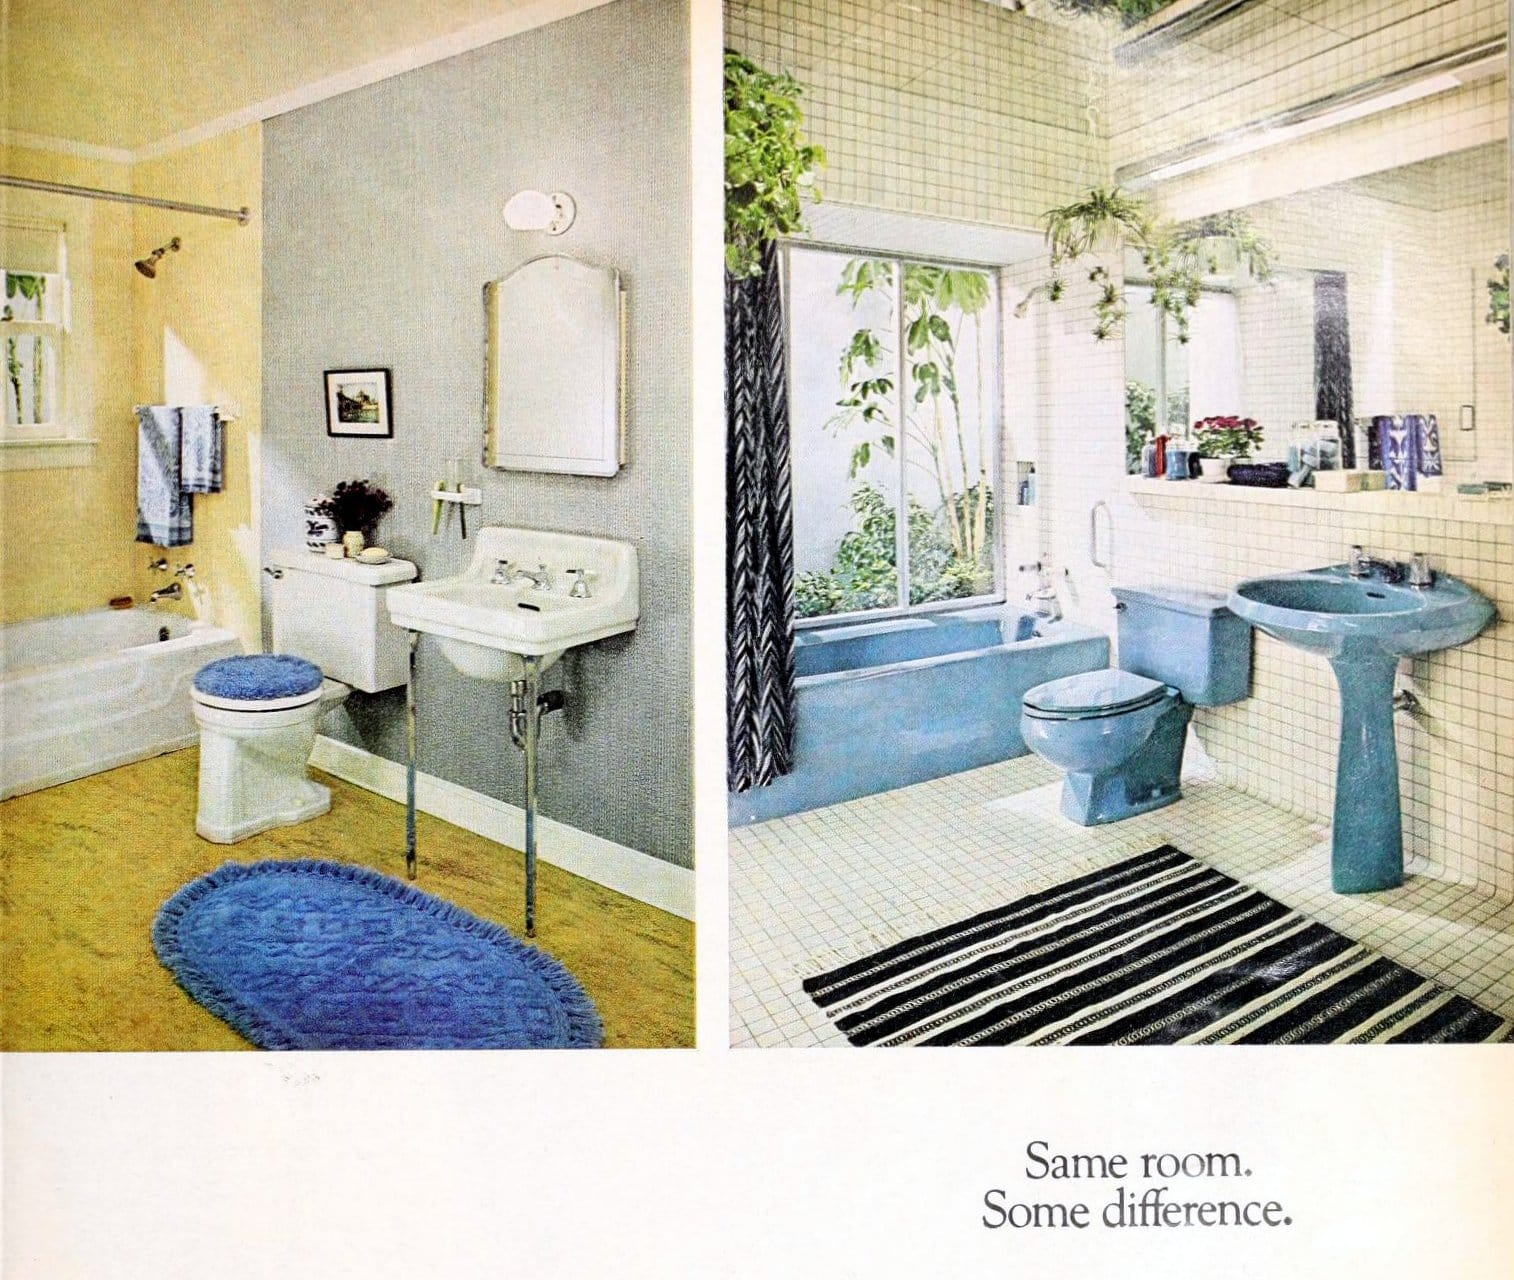 Before and after modernized bathroom decor - 1950s to 1980s